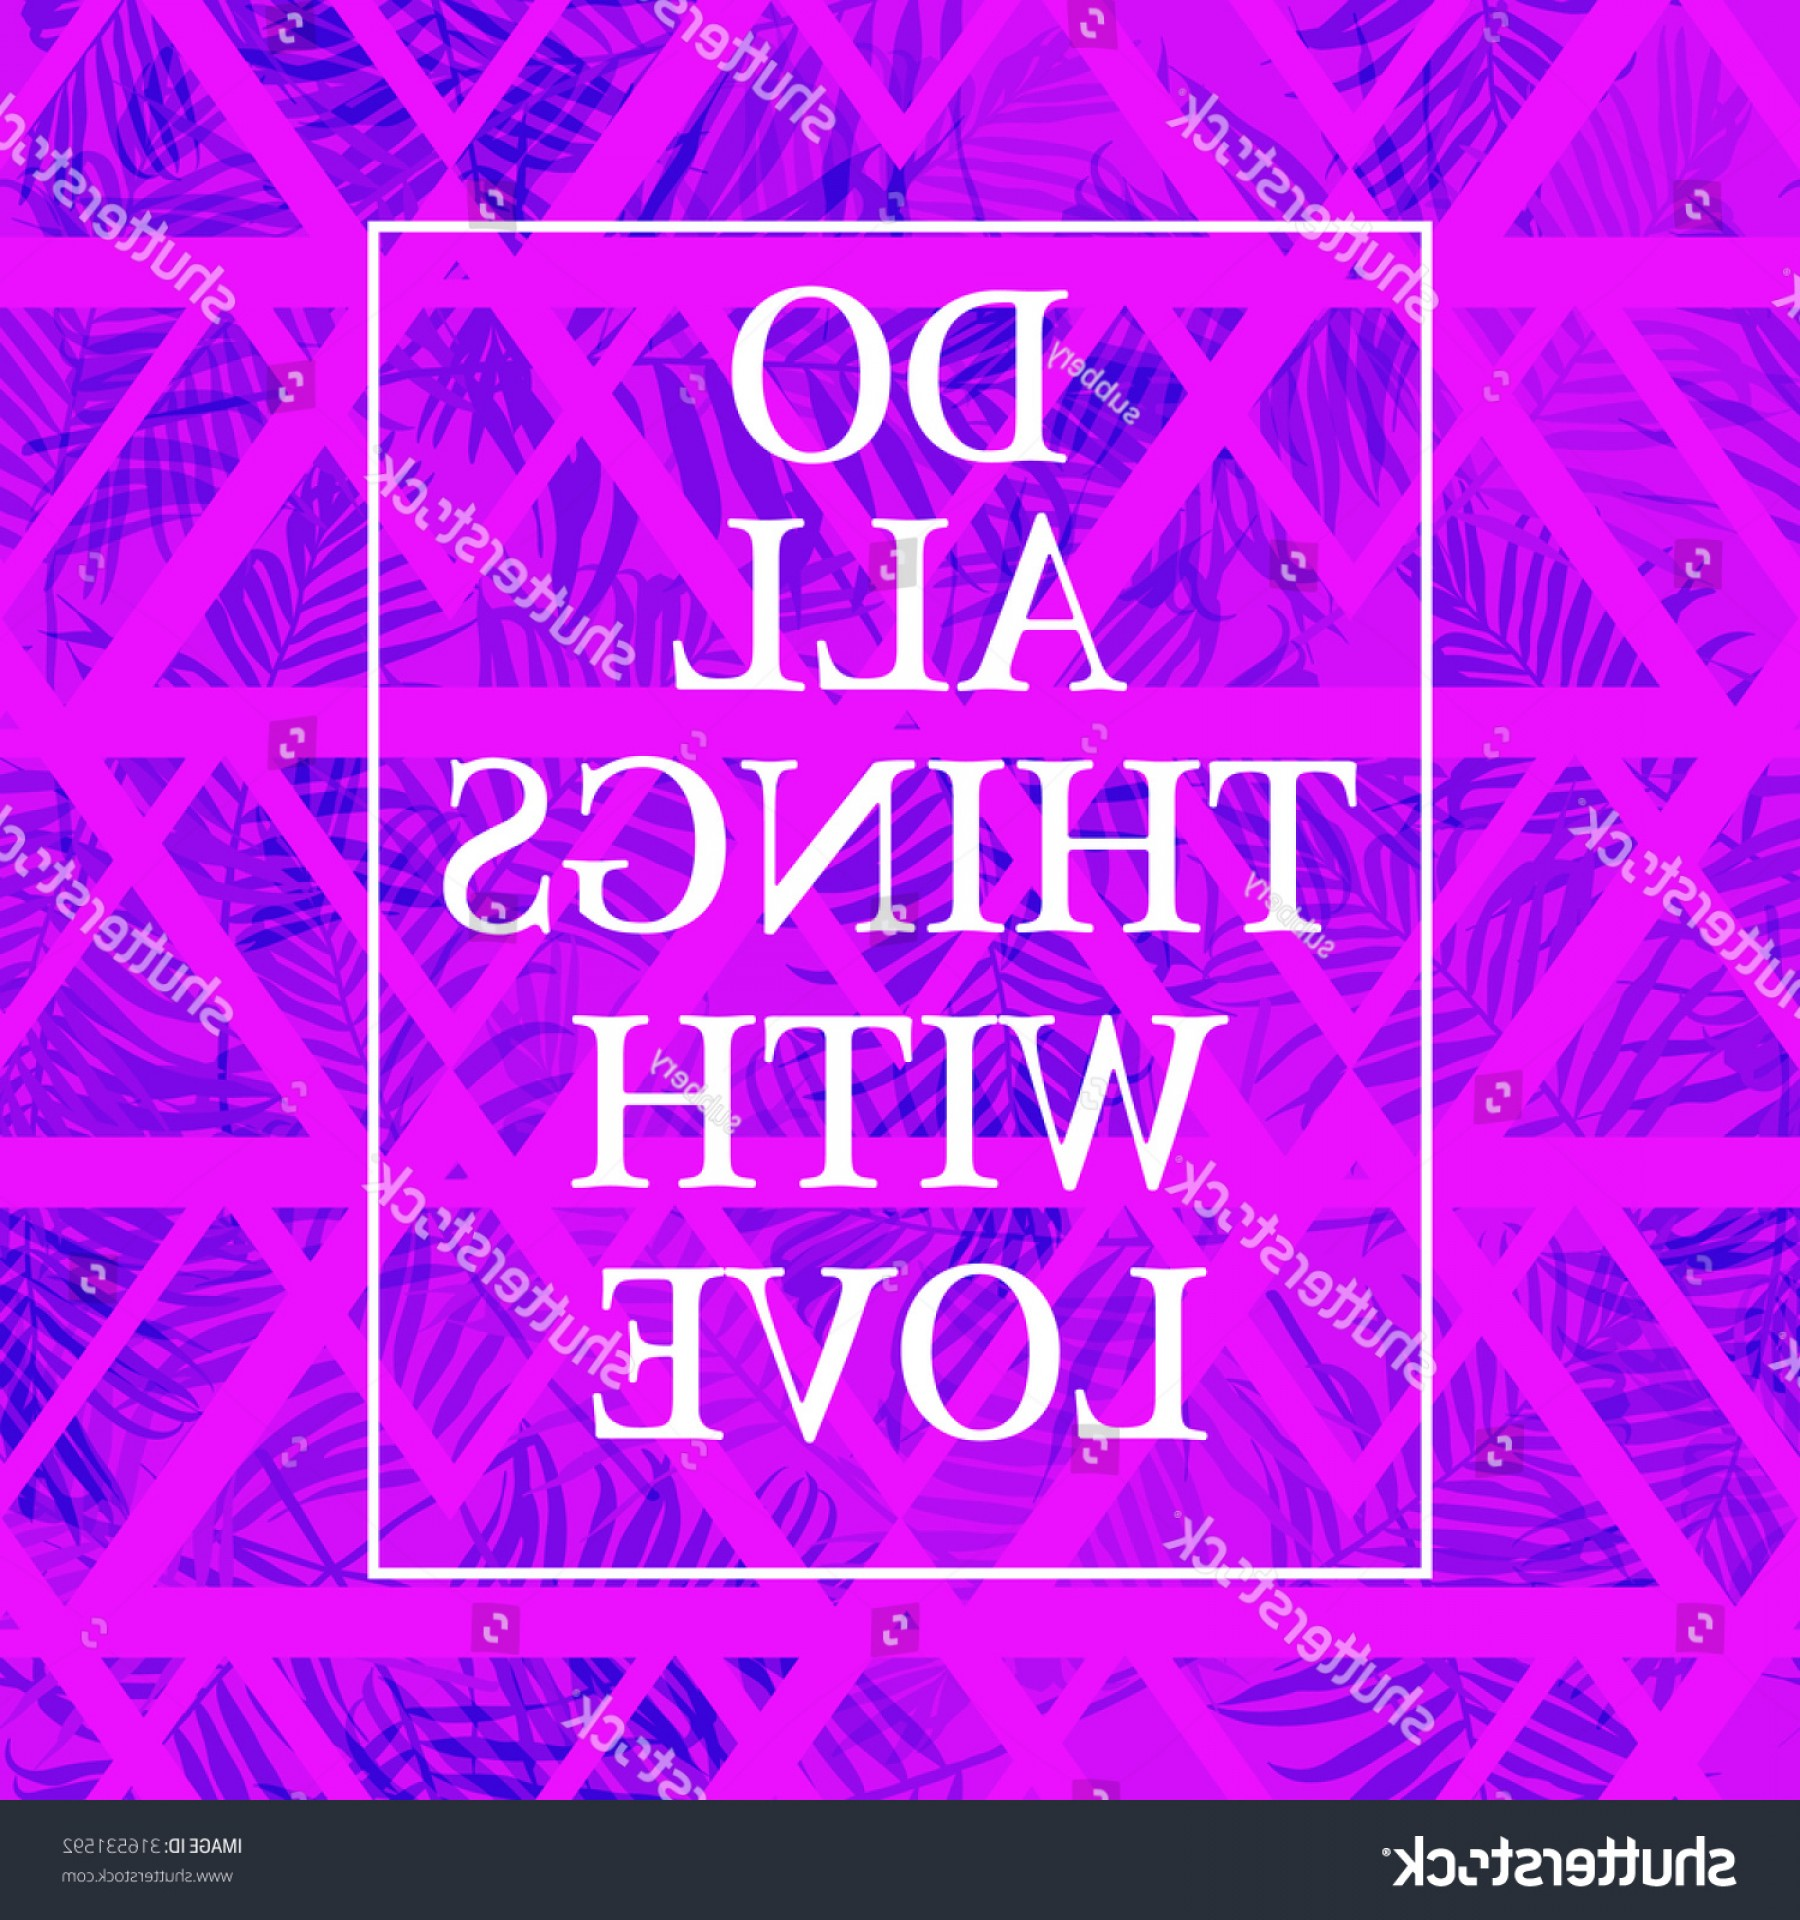 Inspirational Backgrounds Vector: Inspirational Fashion Wallpaper Neon Colored Print